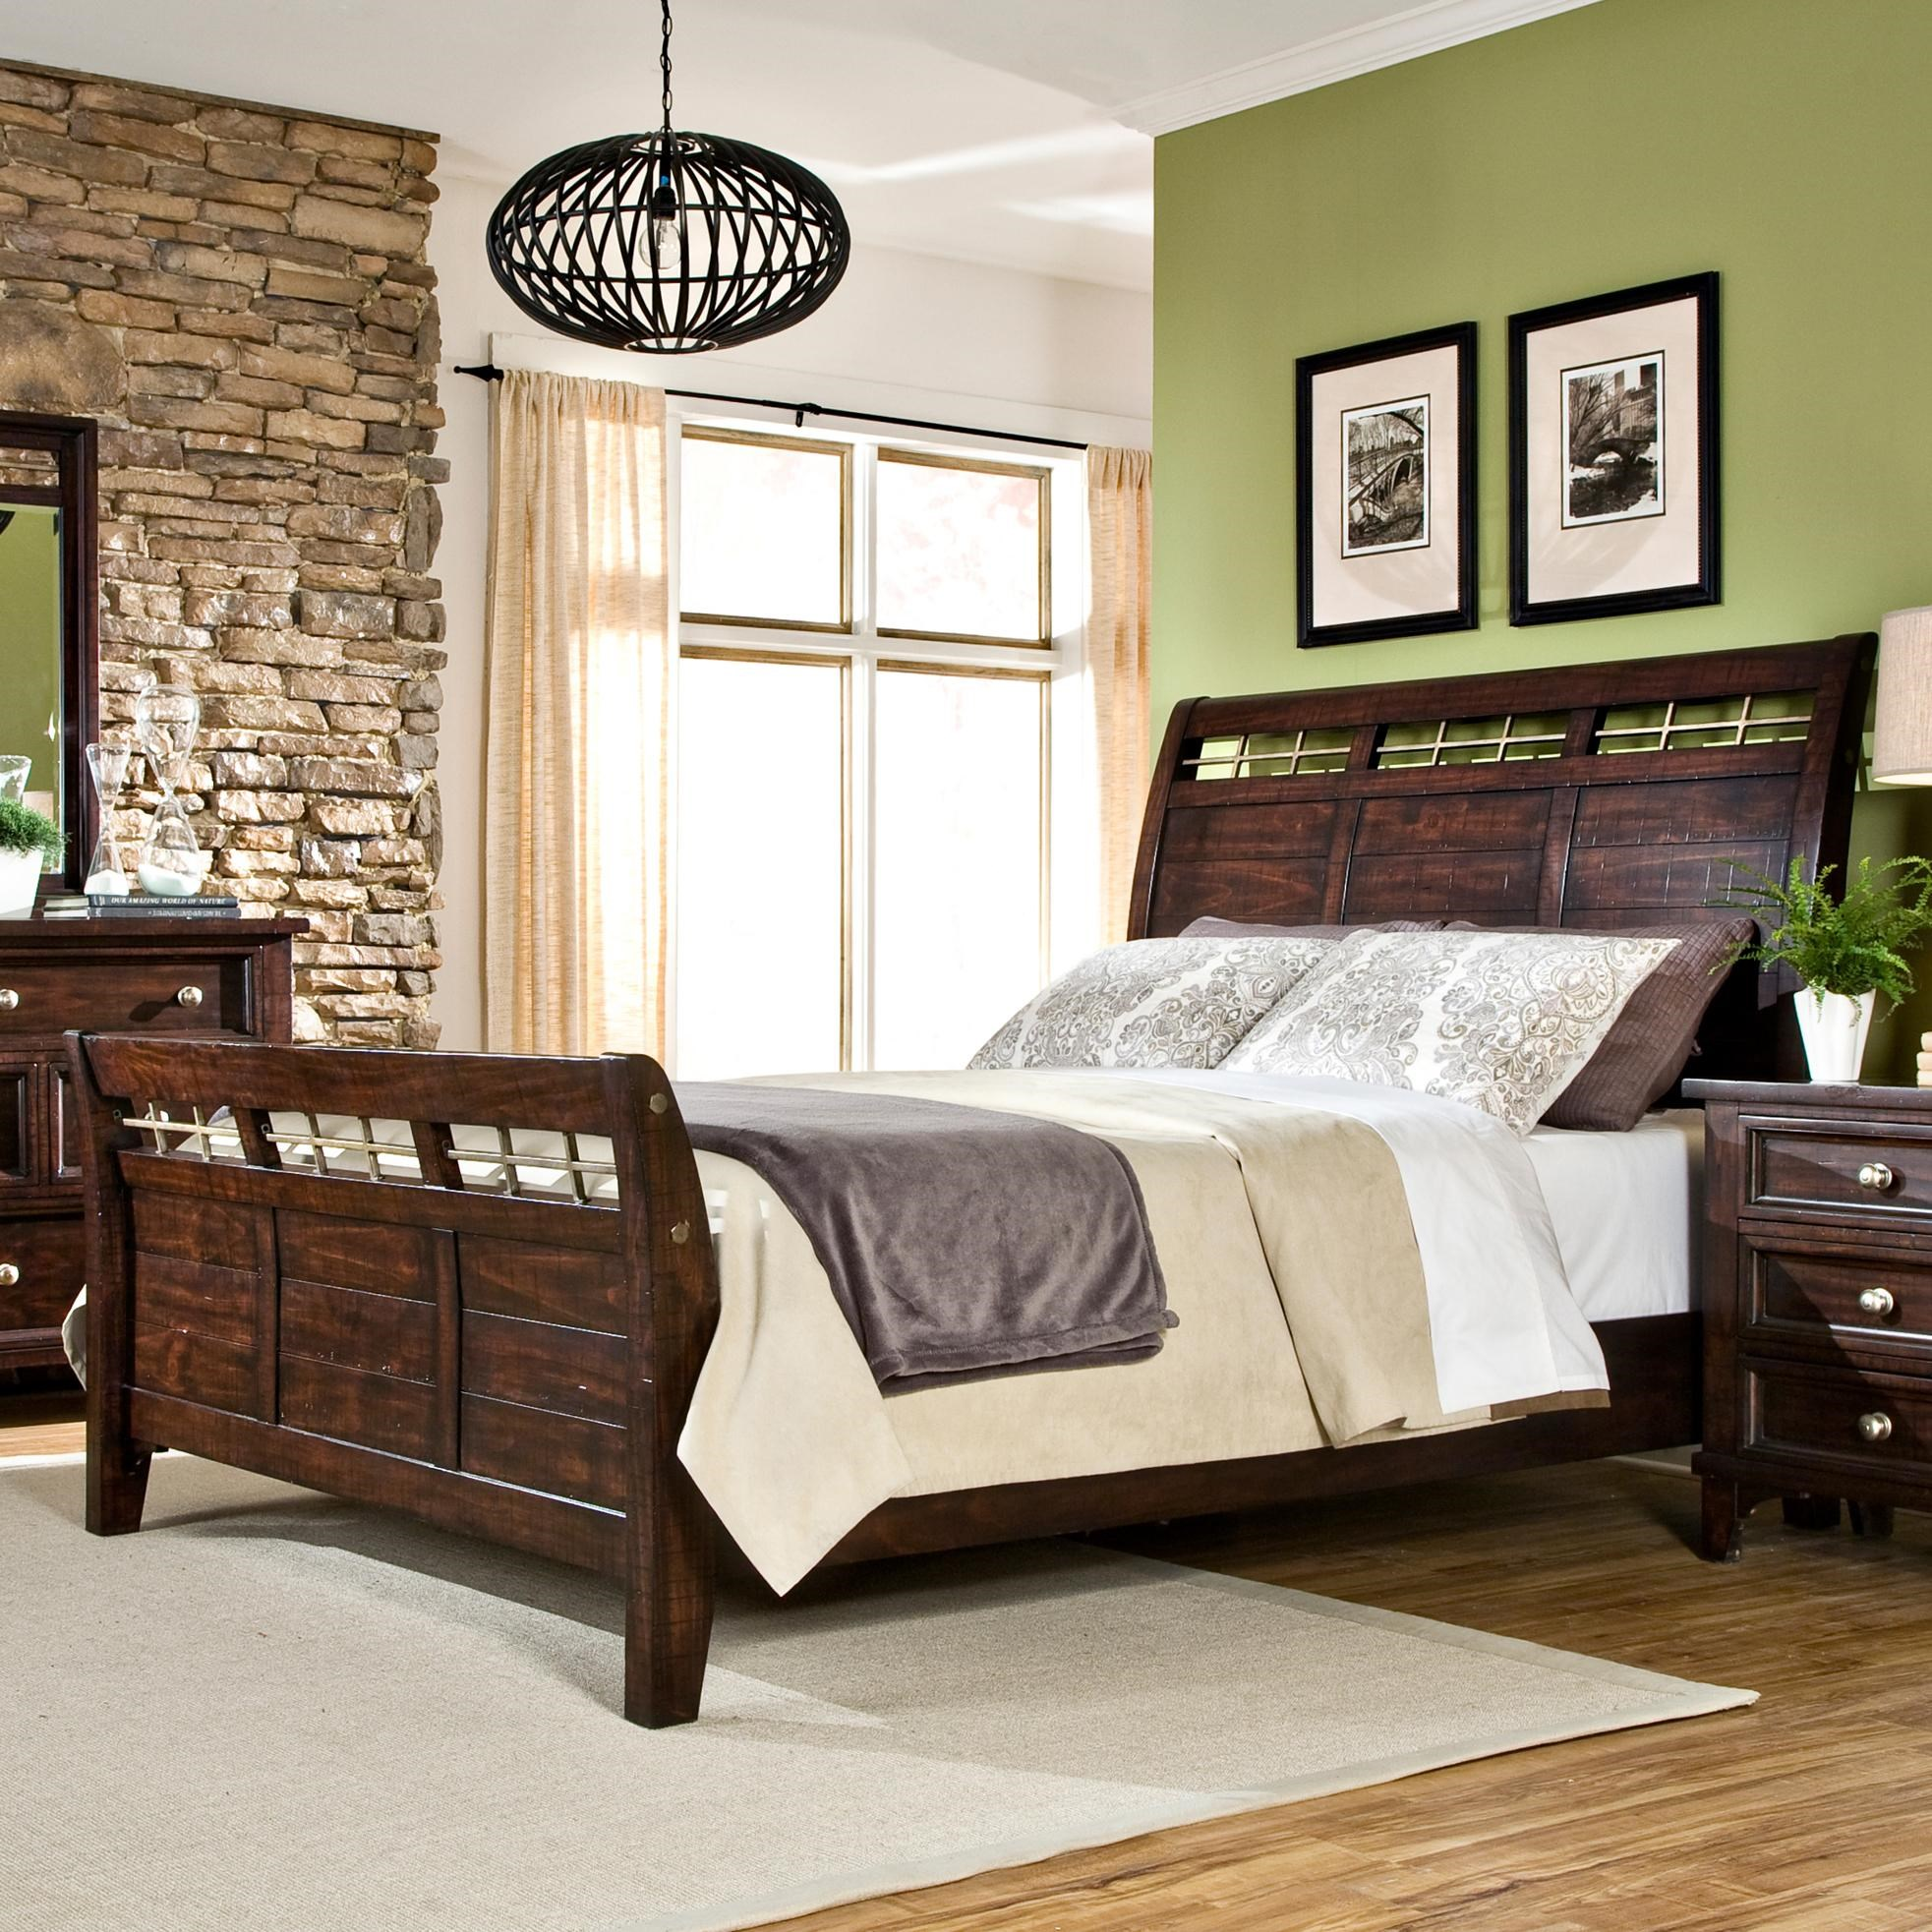 Metal Sleigh Bed King King Sleigh Bed With Metal